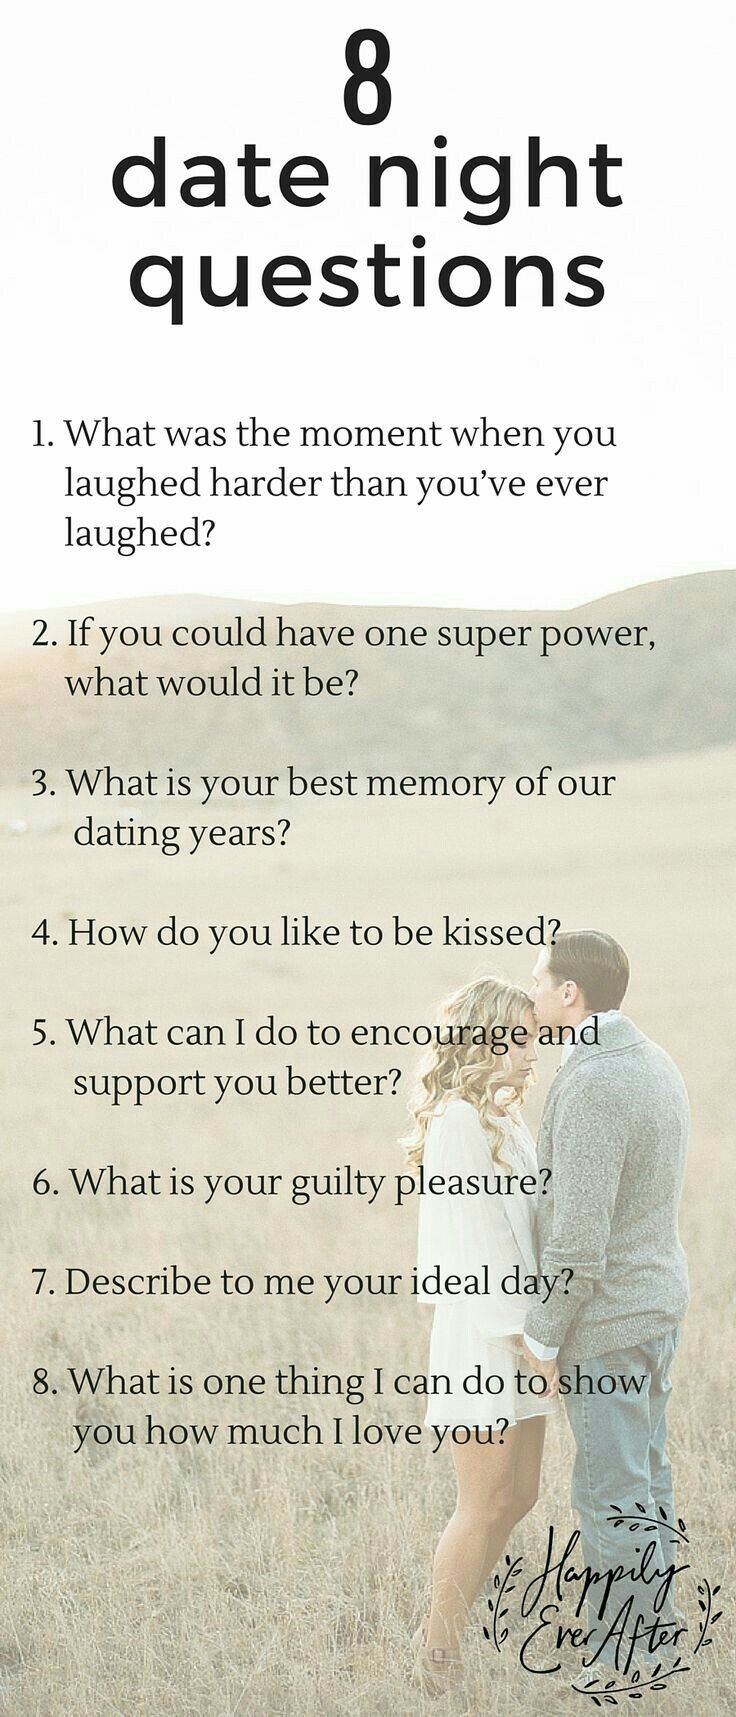 dating show questions